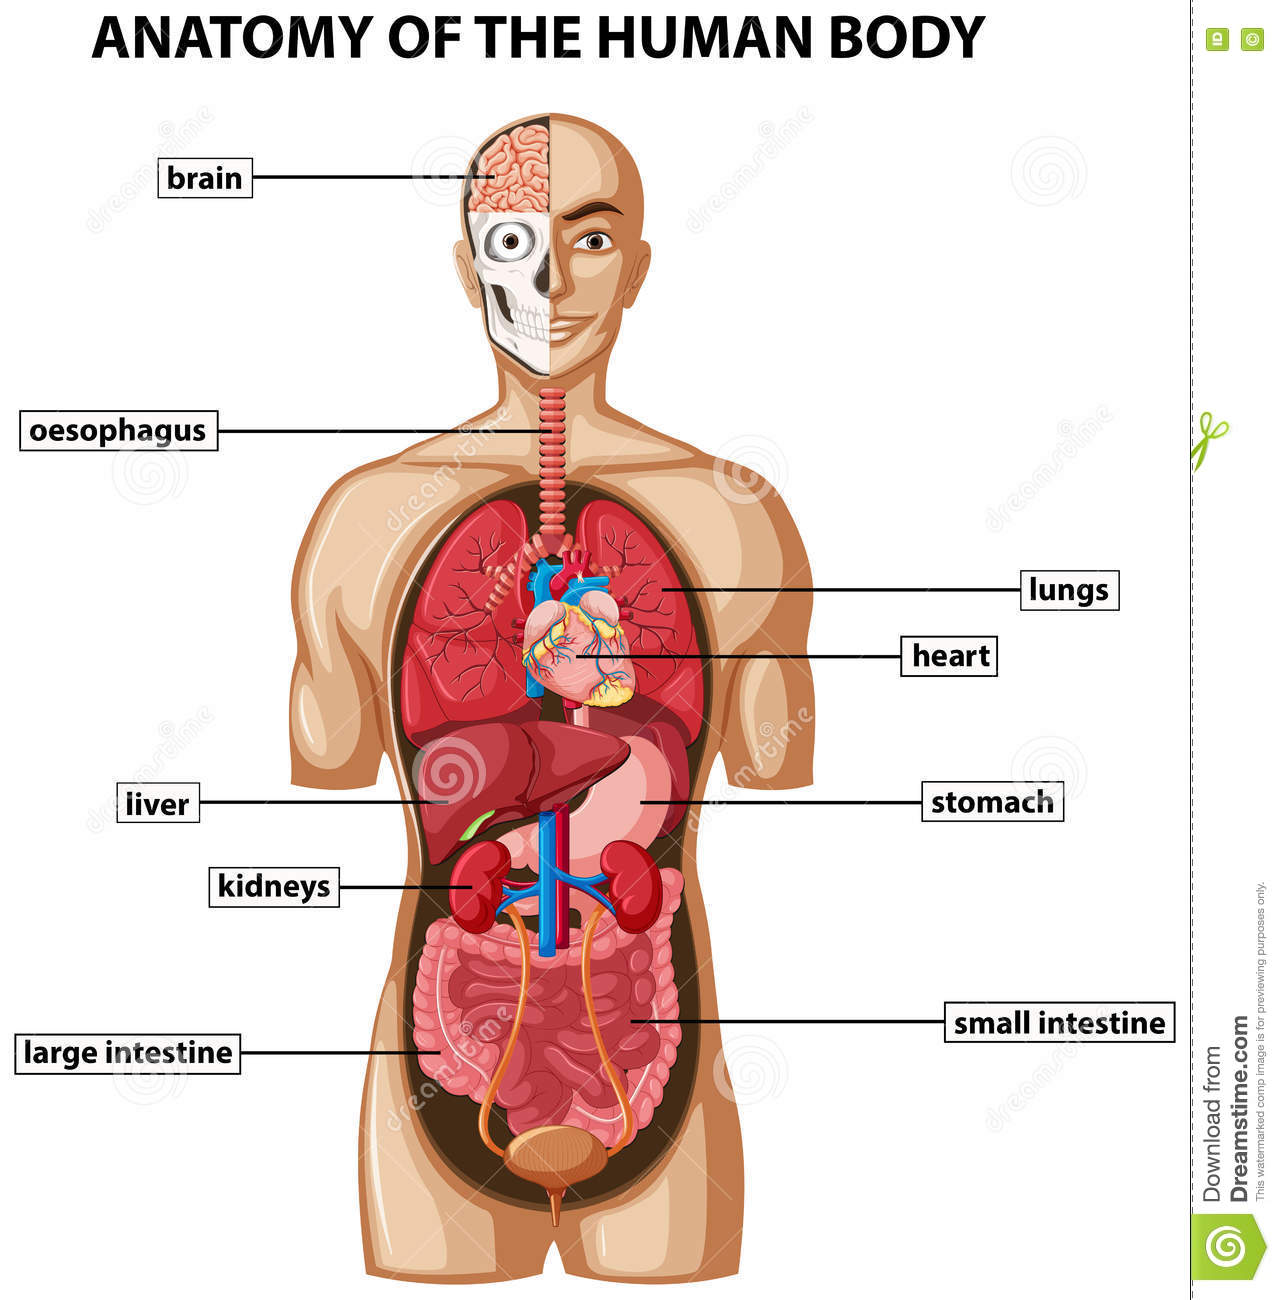 organs of the human body diagram stock vector - image: 73941348, Human body